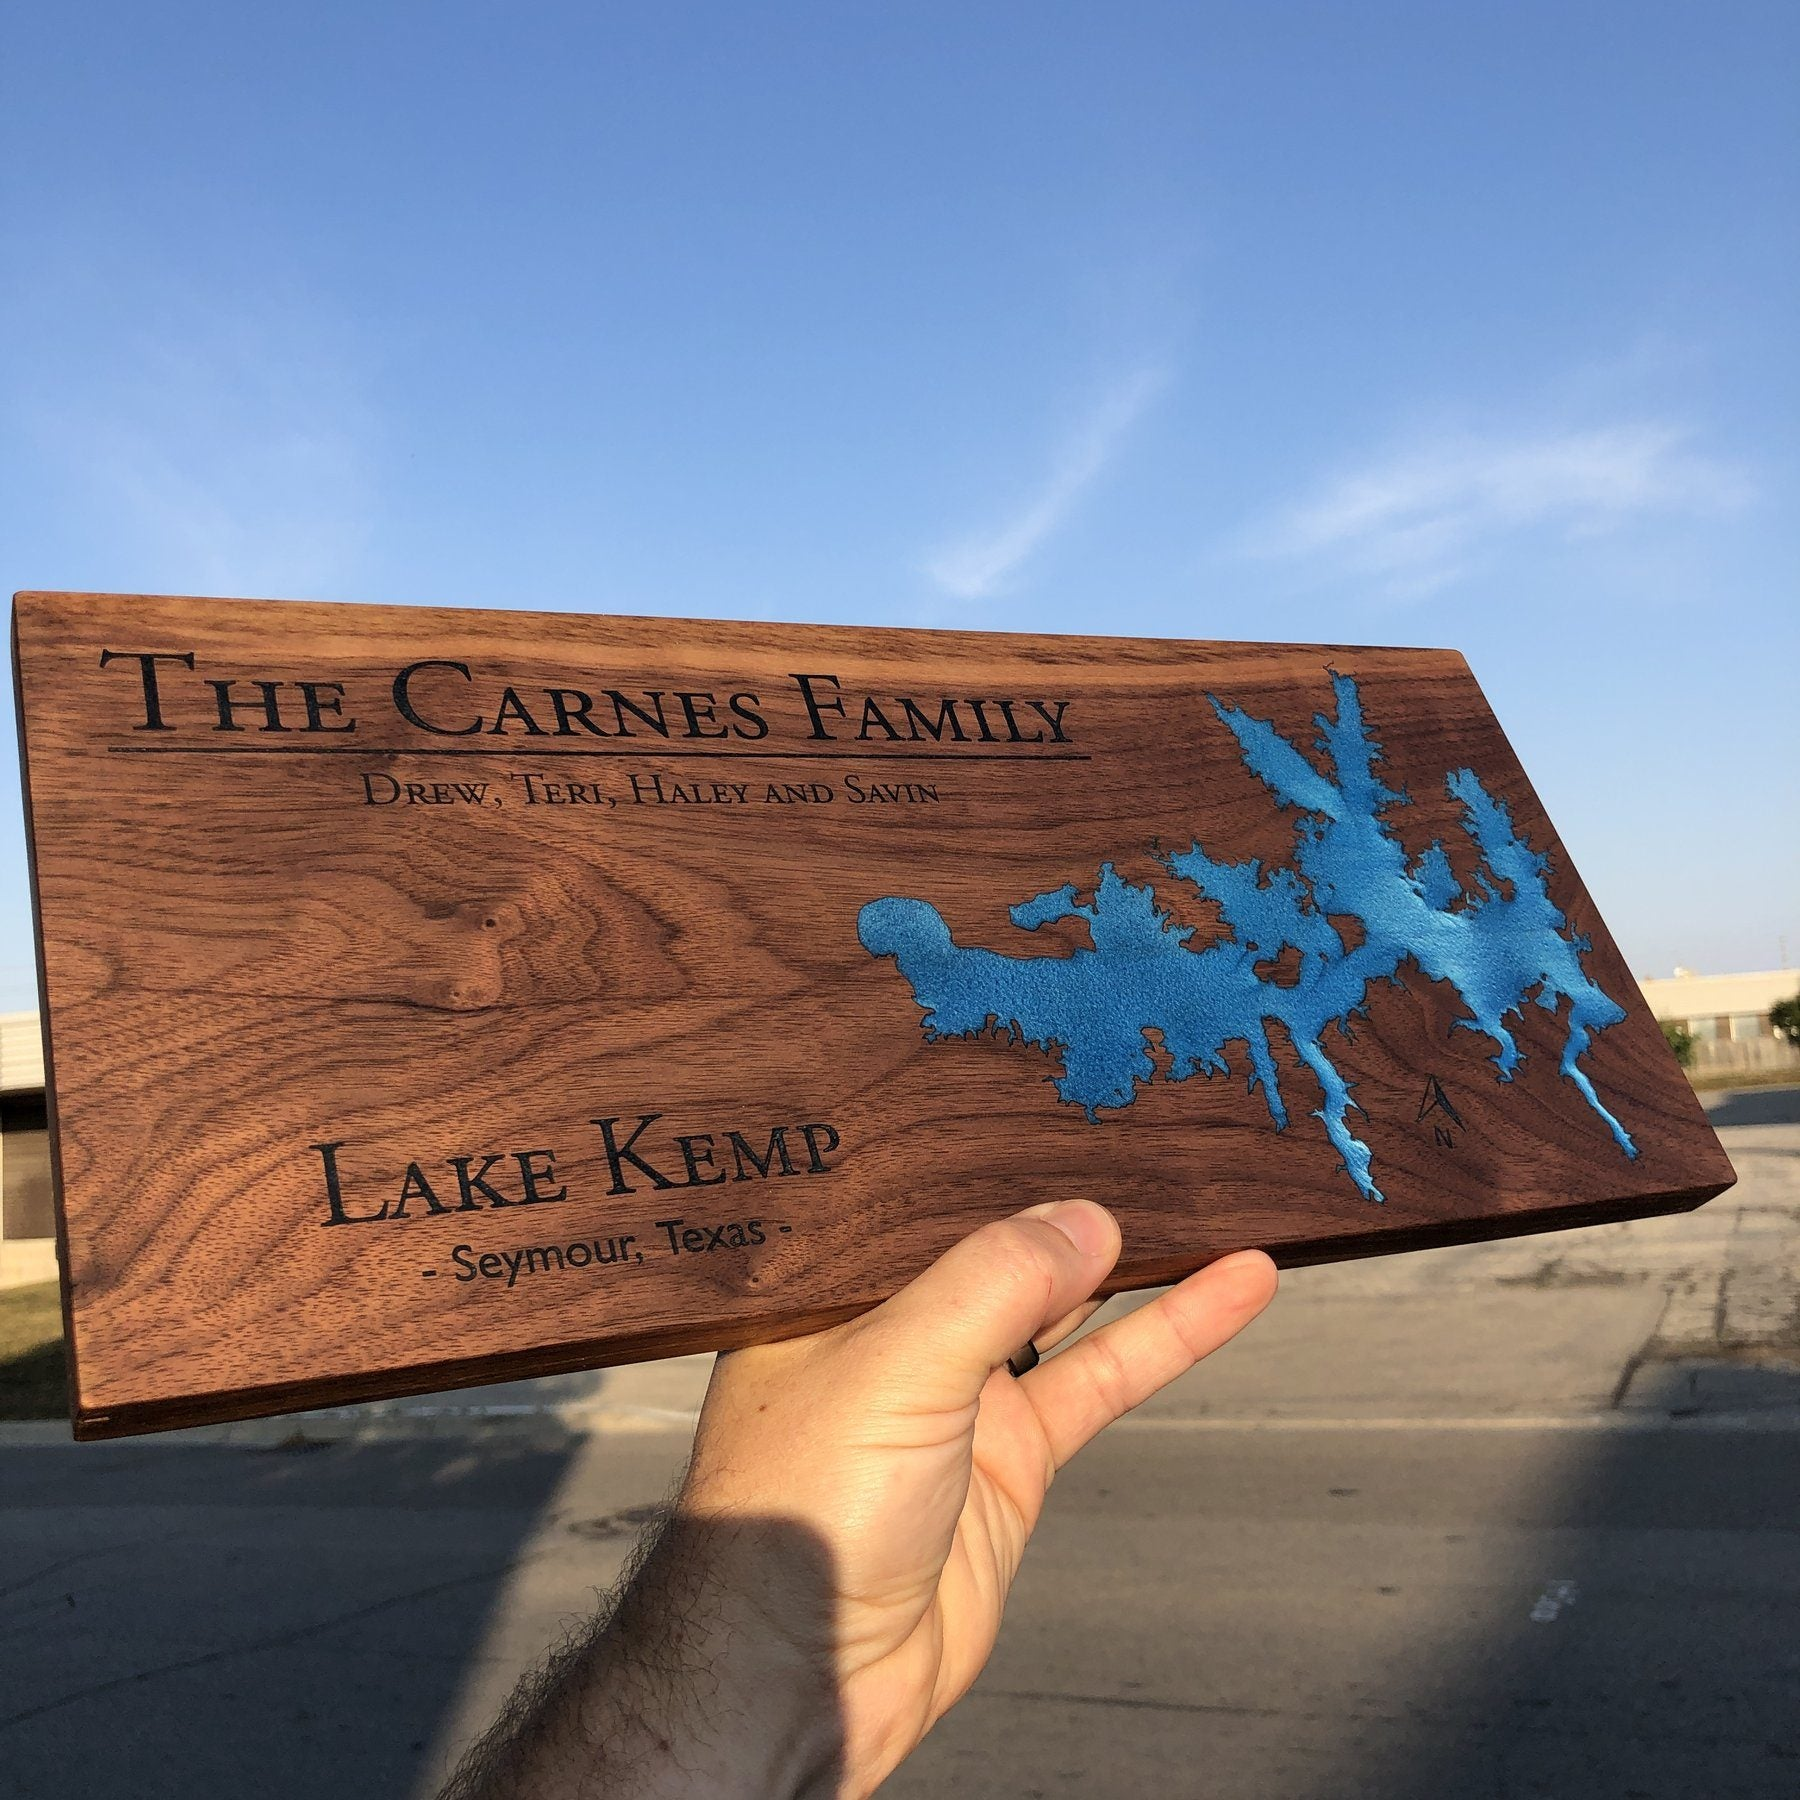 Detailed Custom Designed Lake Board with Lake Kemp and Blue Epoxy by Keyway Designs